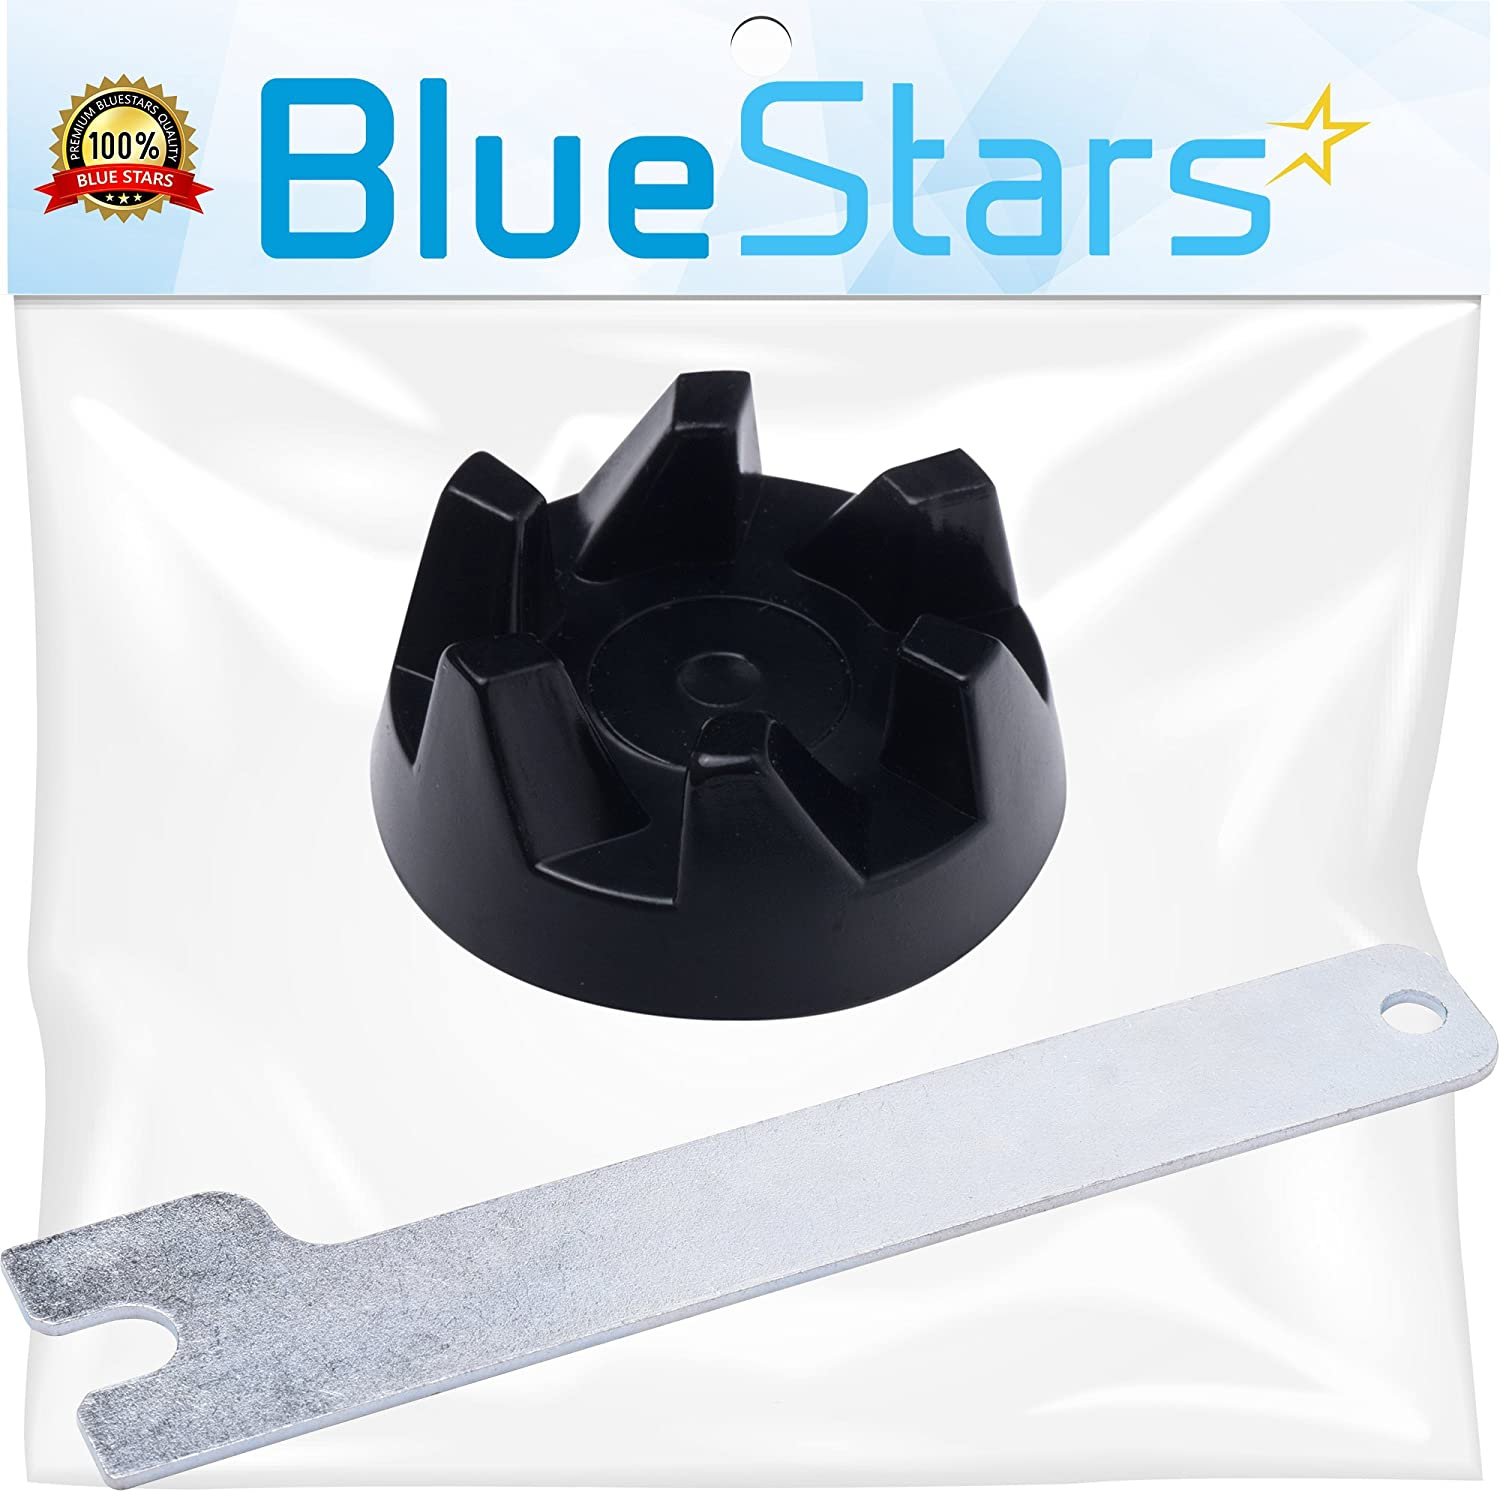 Ultra Durable 9704230 Blender Drive Coupler with Spanner Kit Replacement Parts by Blue Stars - Exact Fit for KitchenAid KSB3 KSB5 - Replaces WP9704230VP WP9704230 PS11746921